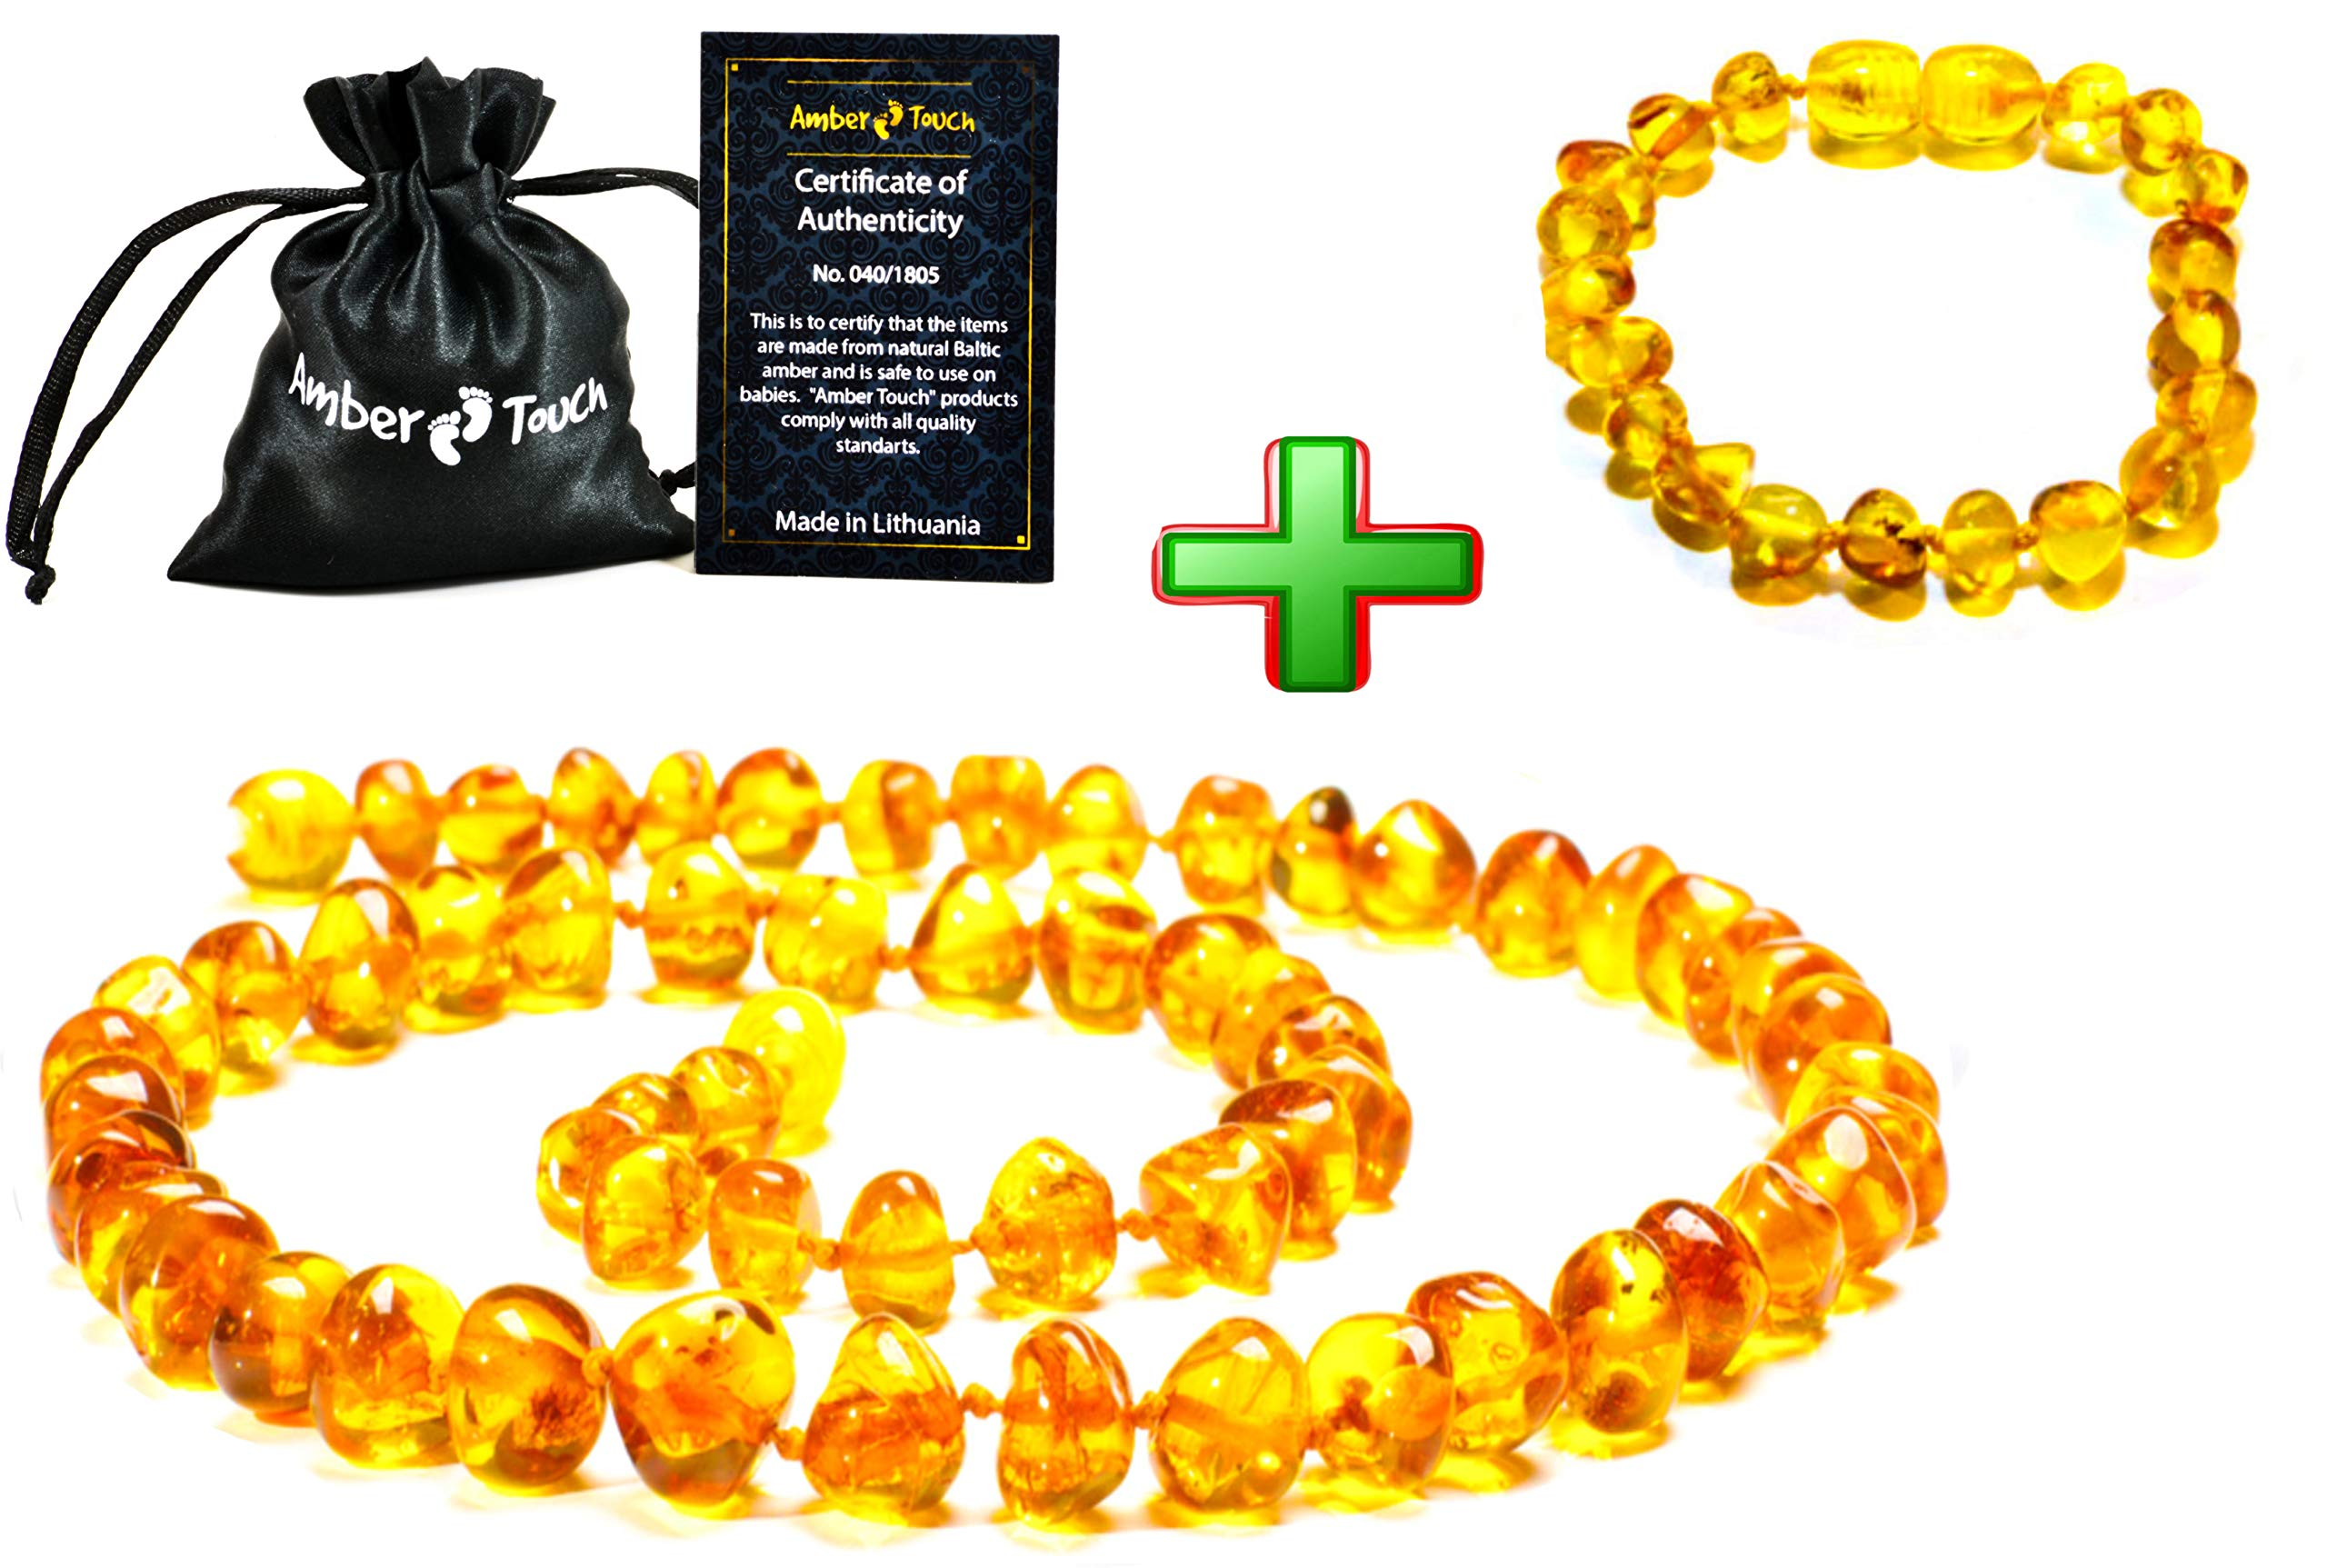 Baltic Amber Teething Necklace + Bracelet (Unisex) - Anti Flammatory, Drooling & Teething Pain Reduce Properties - Certificated Natural Baltic Amber with The Highest Quality. by Amber-Touch